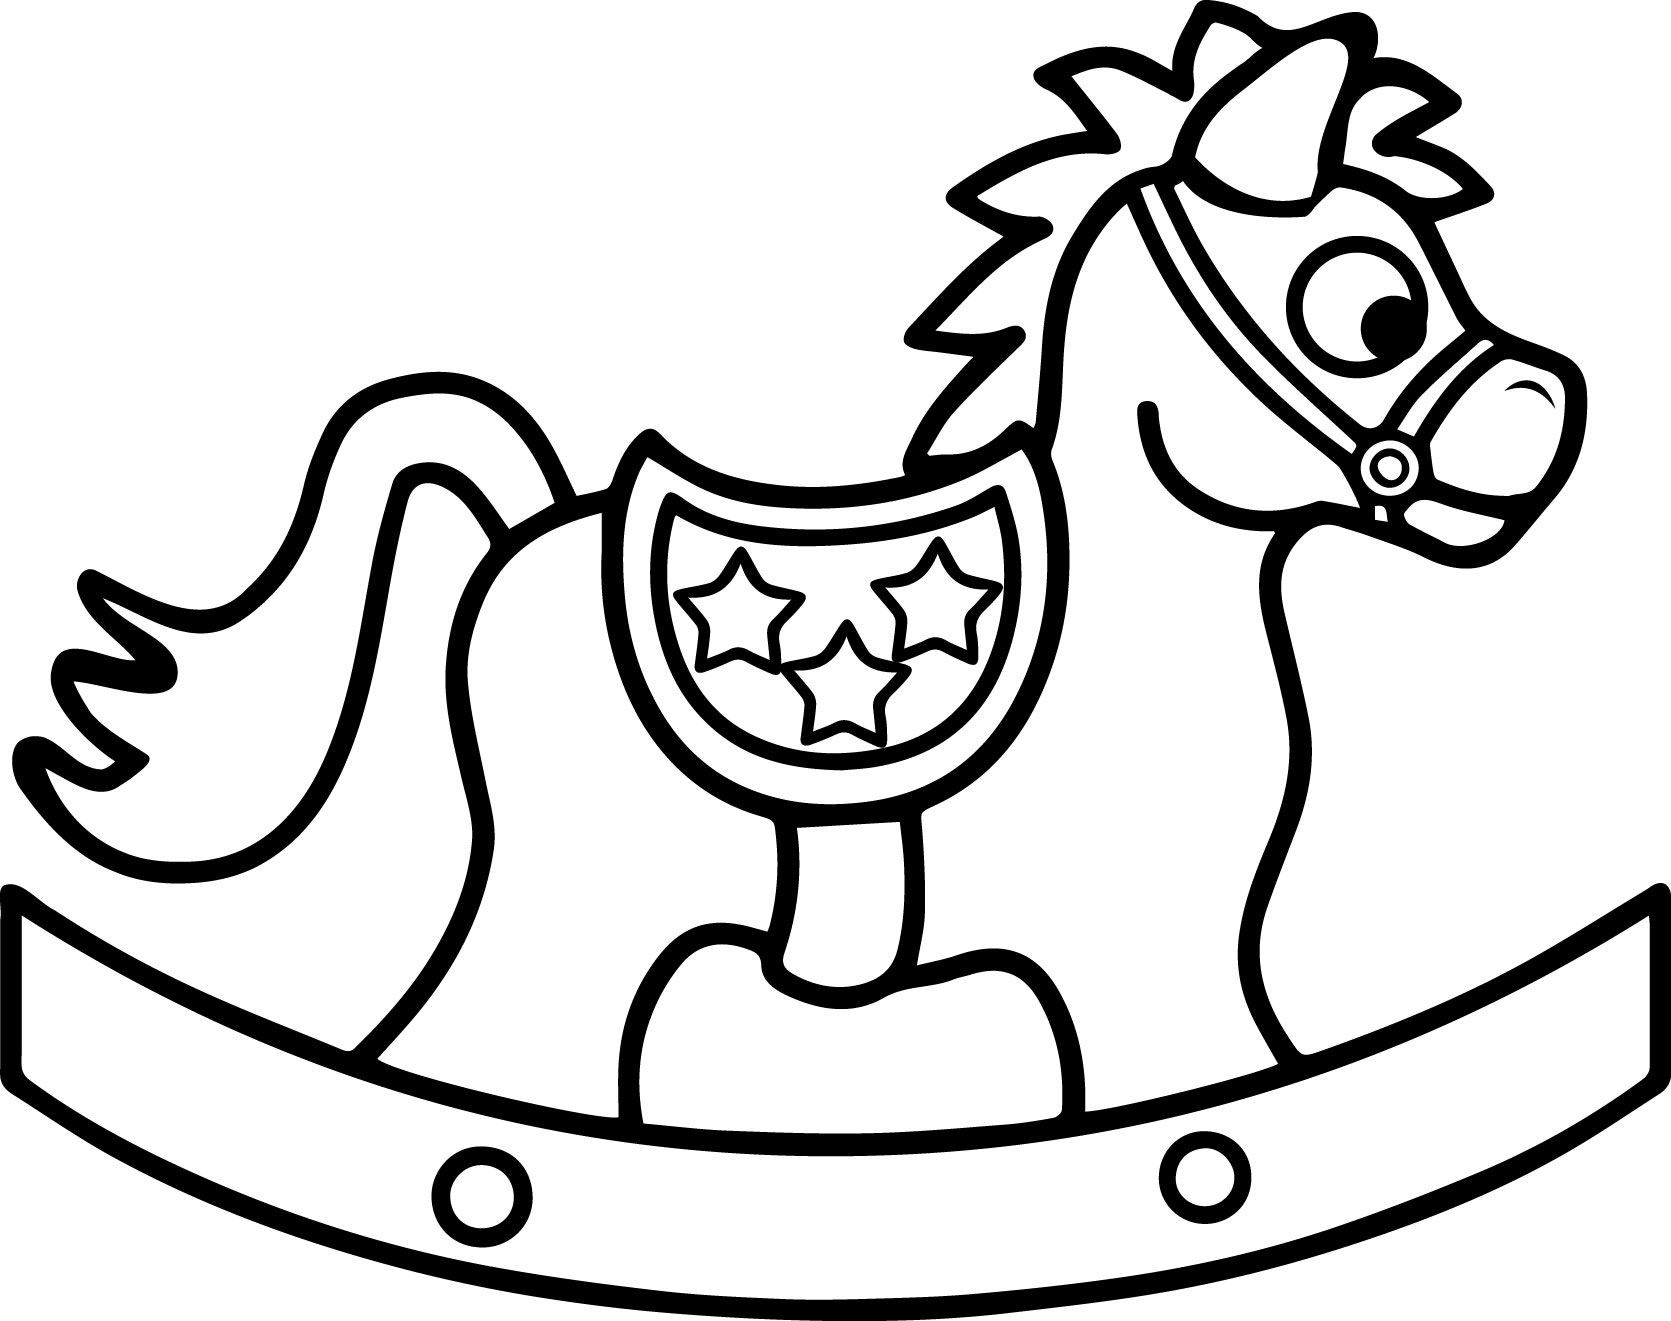 Horse Toy Coloring Page Wecoloringpage With Images Horse